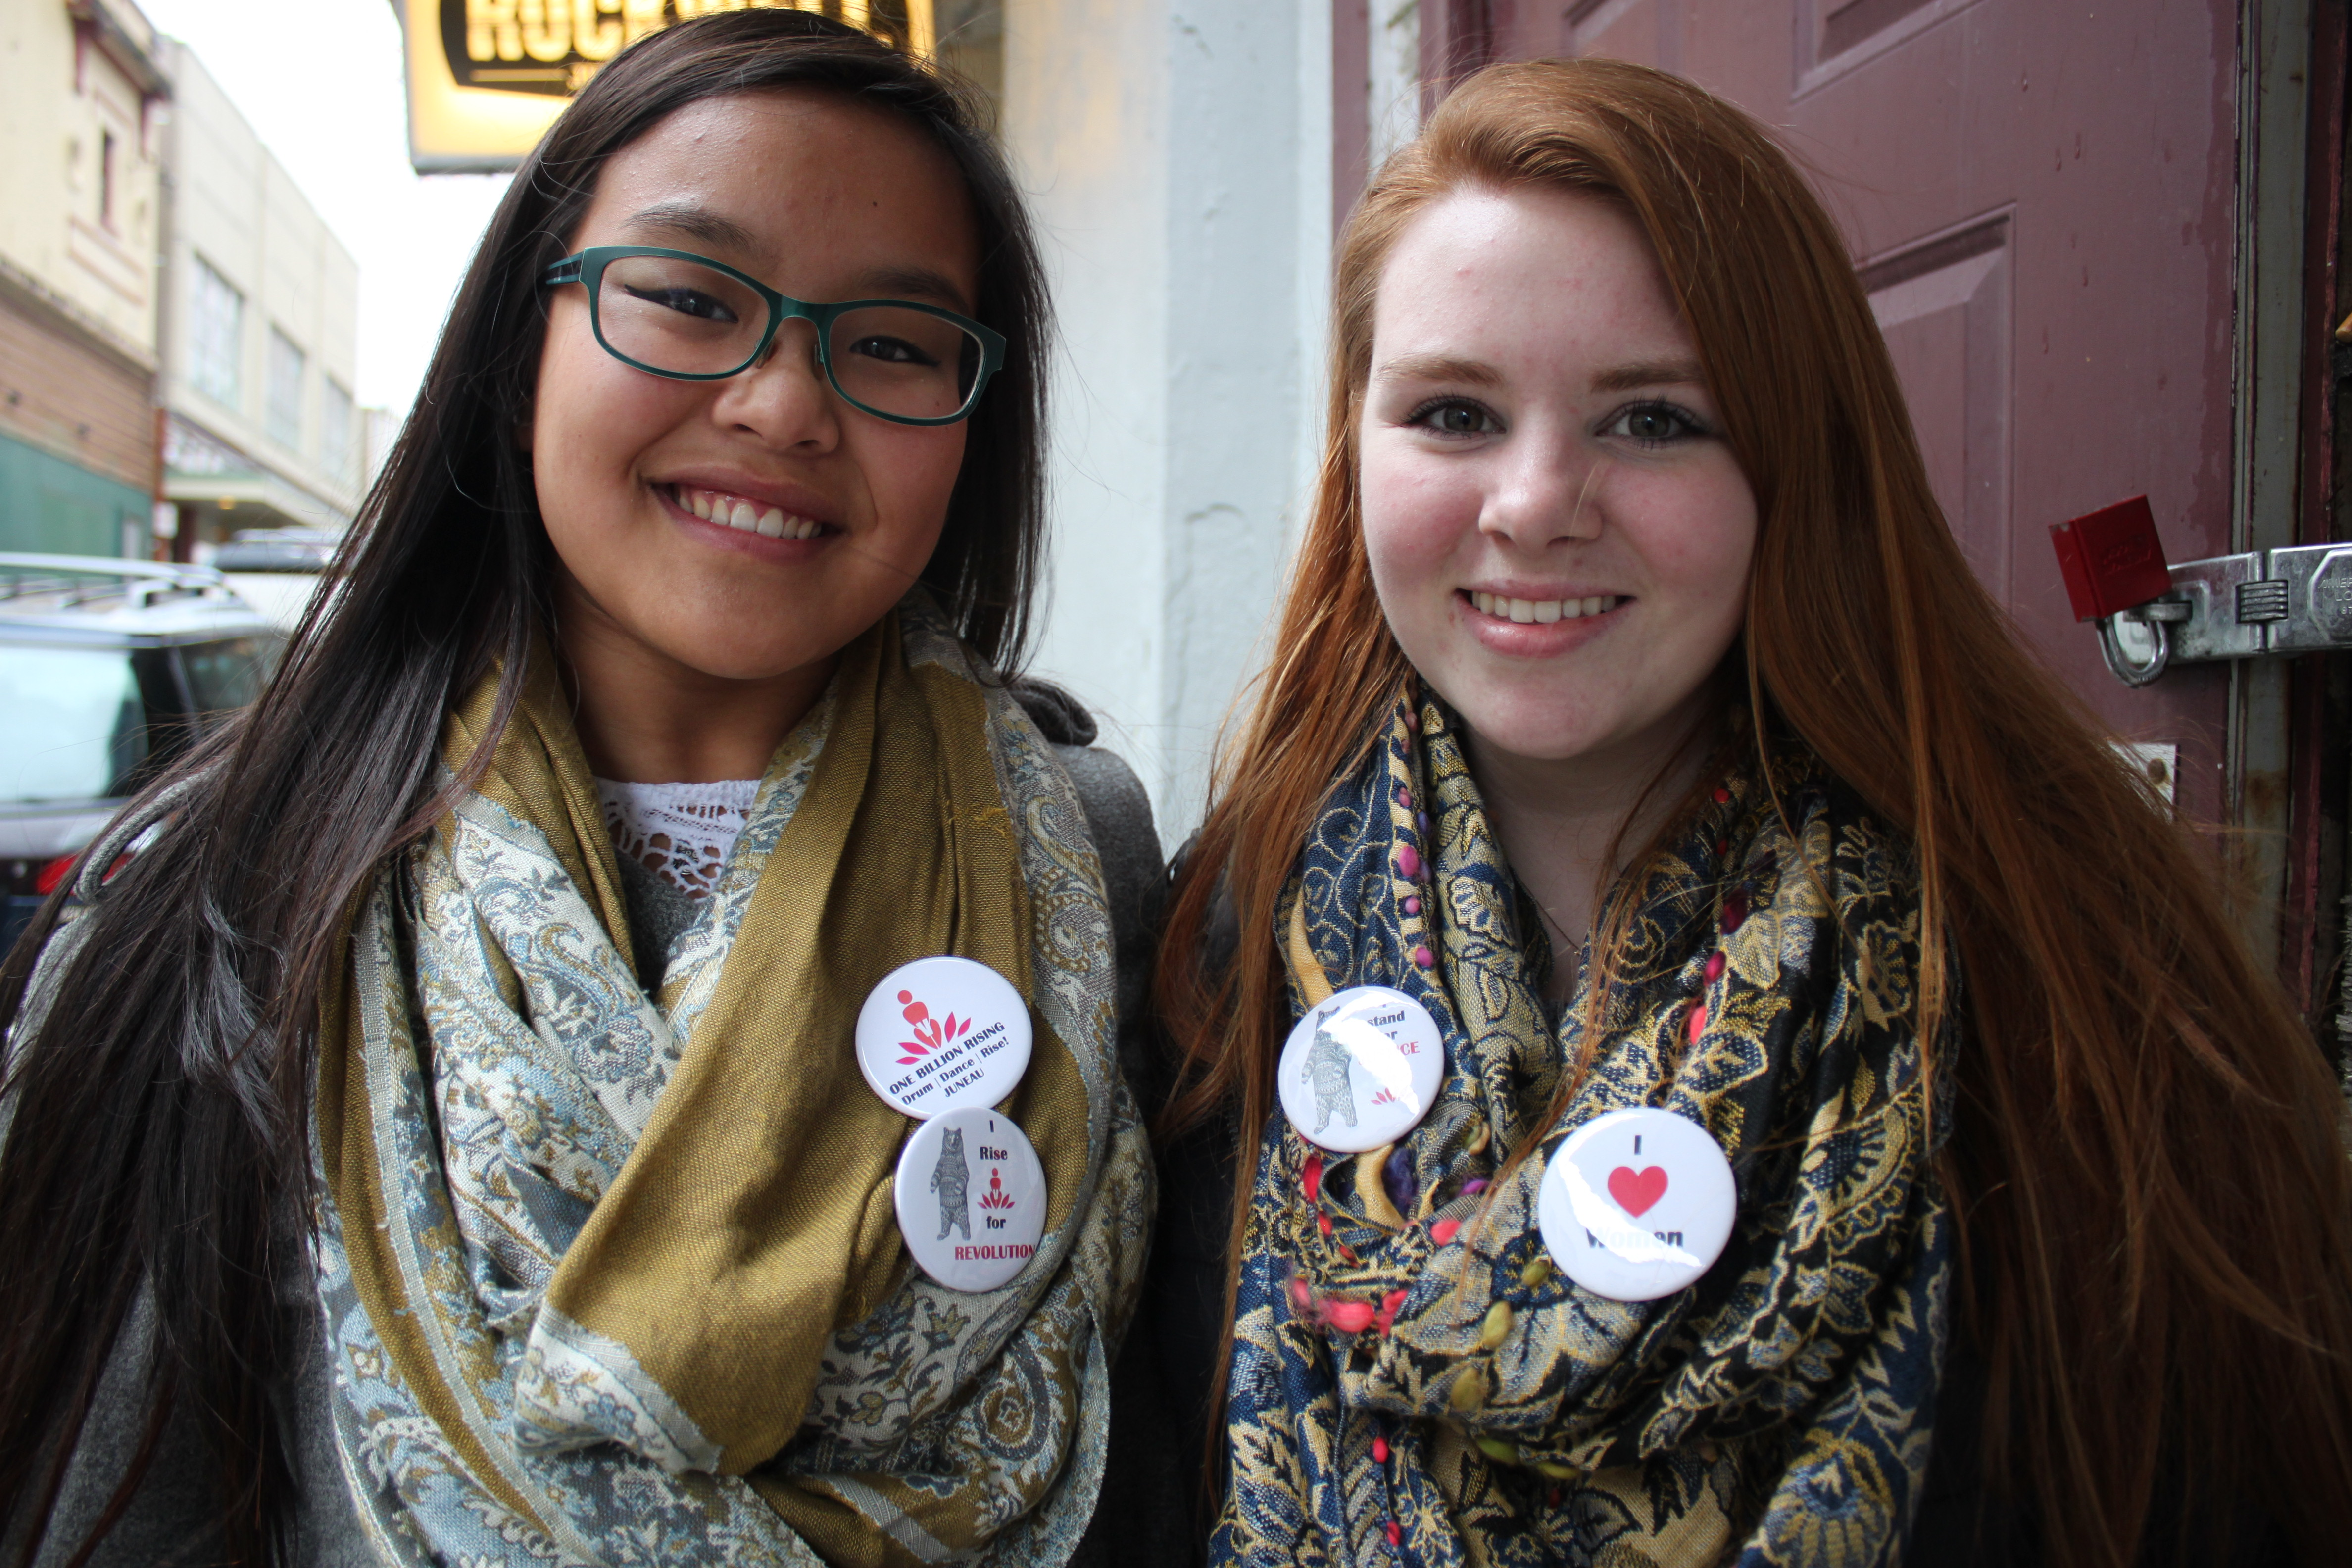 Yana Warner and Chantel Eckland, seniors at Juneau-Douglas High School, participated in the rally. (Photo by Lisa Phu/KTOO)